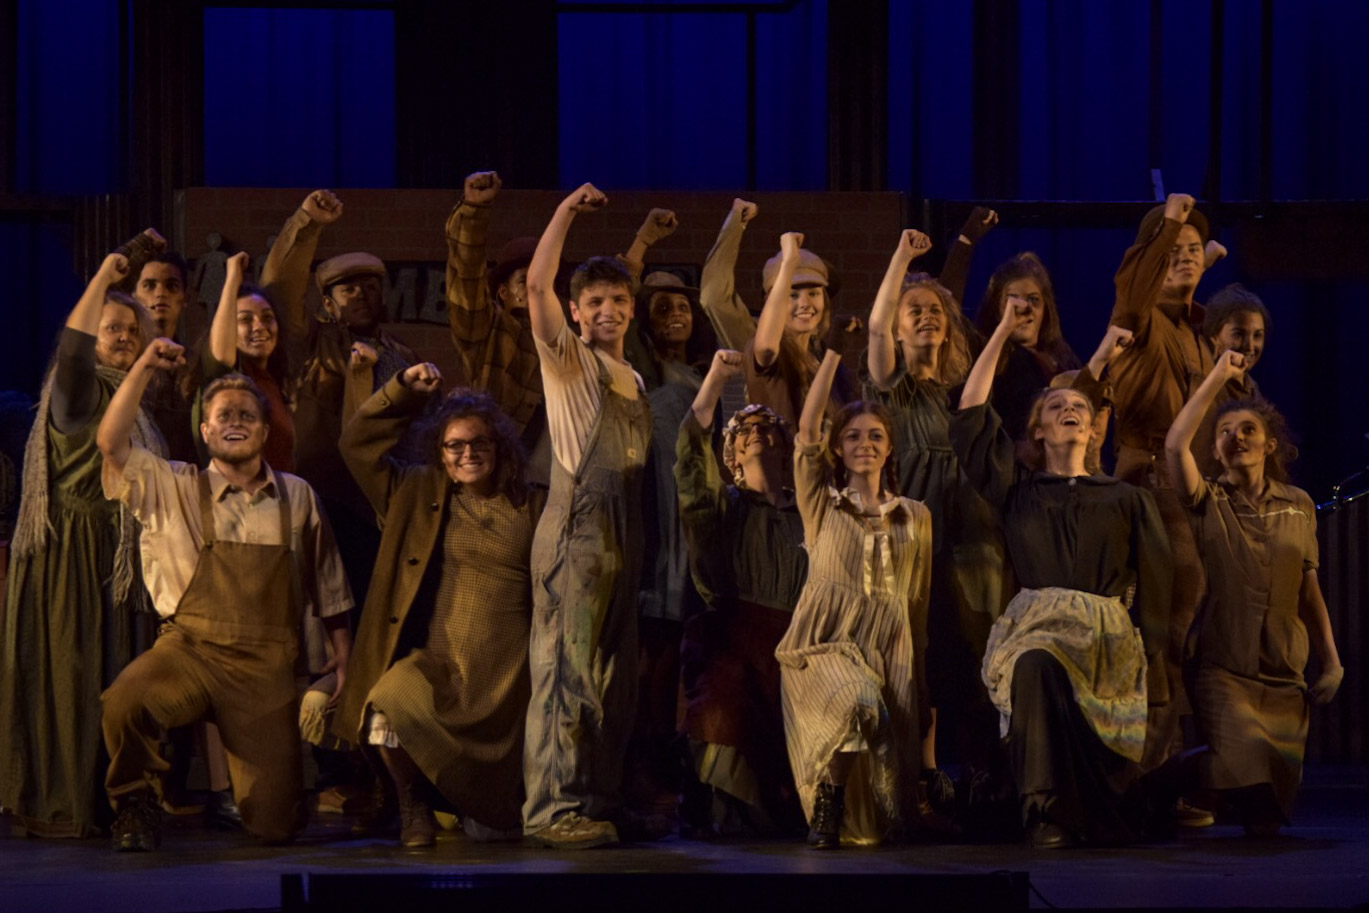 PHS production chosen for performance at state level